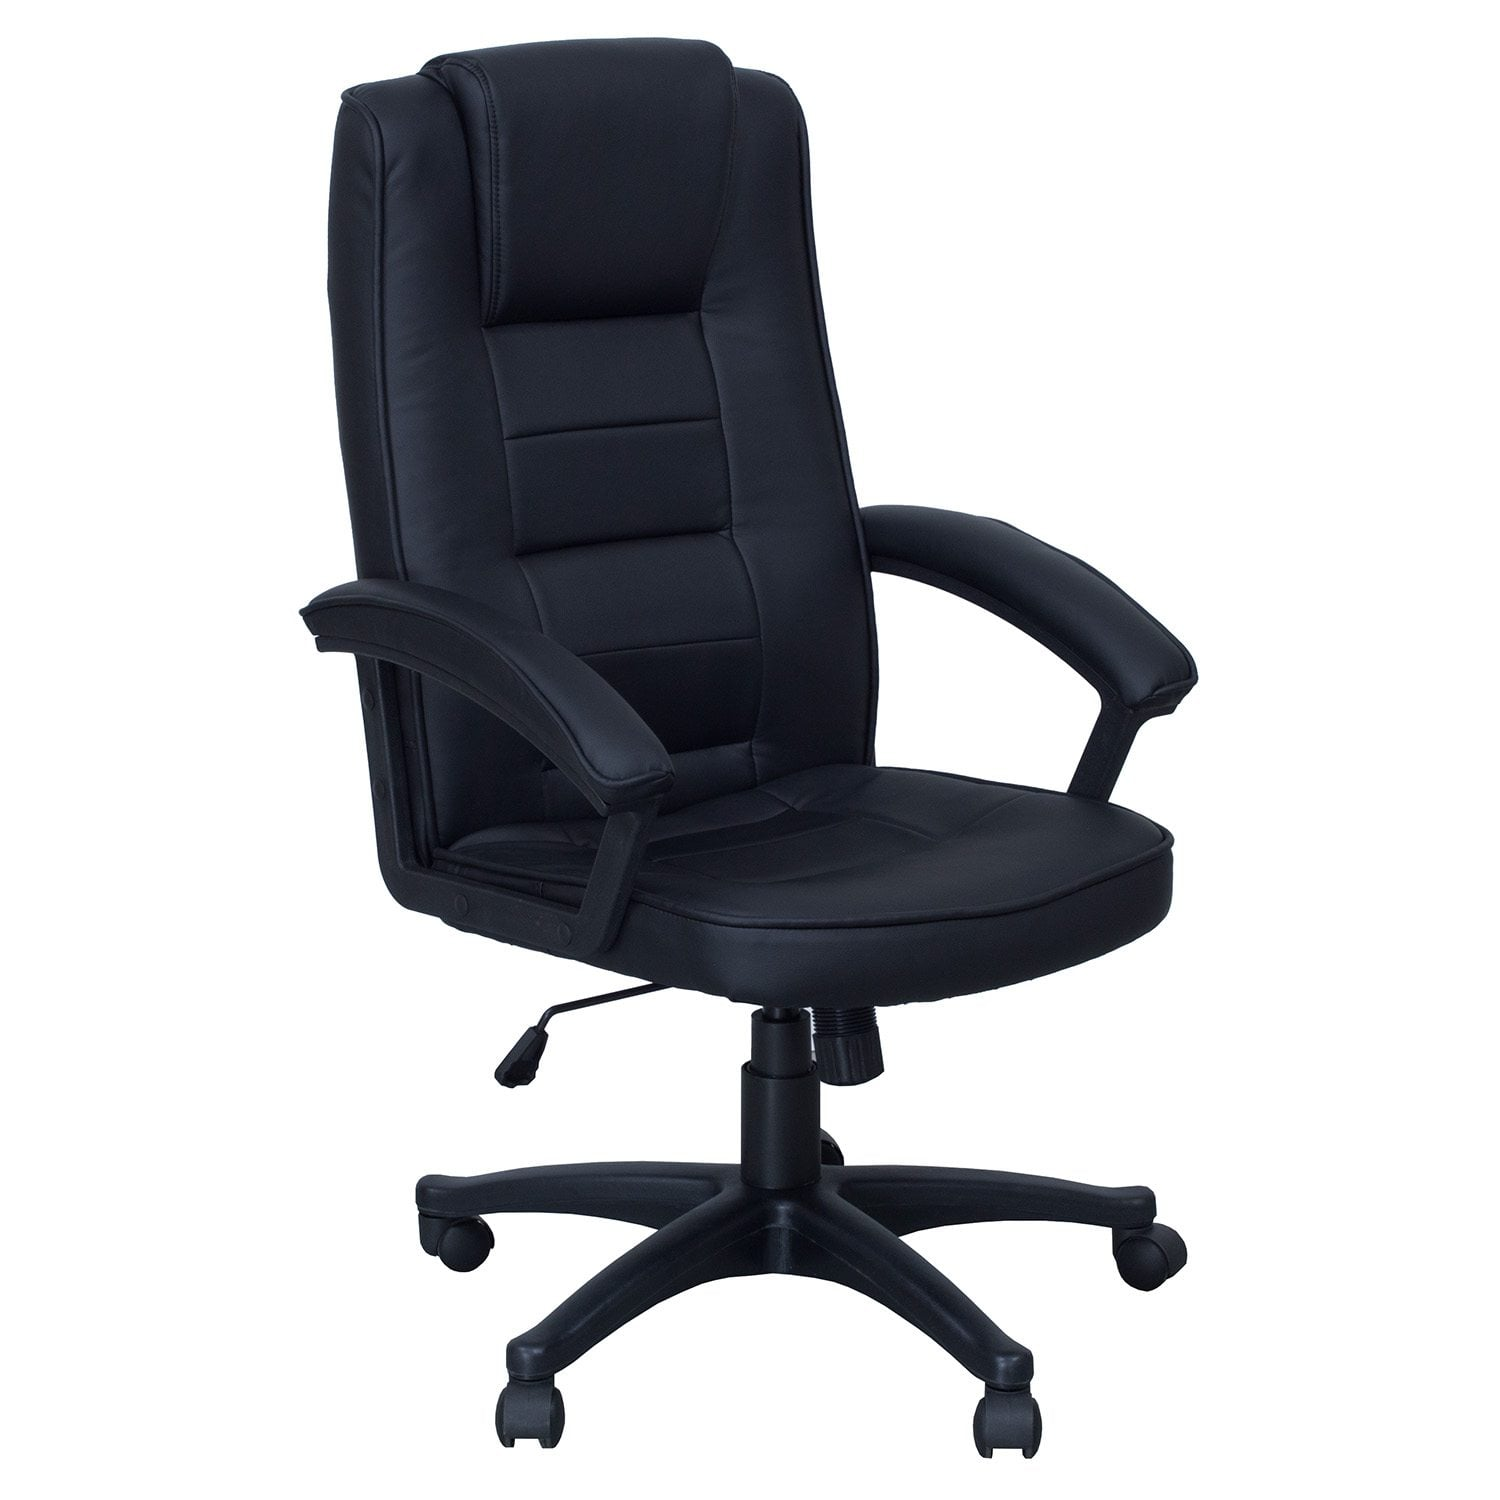 Executive Chairs Inside Job New Leather Executive Chair Black National